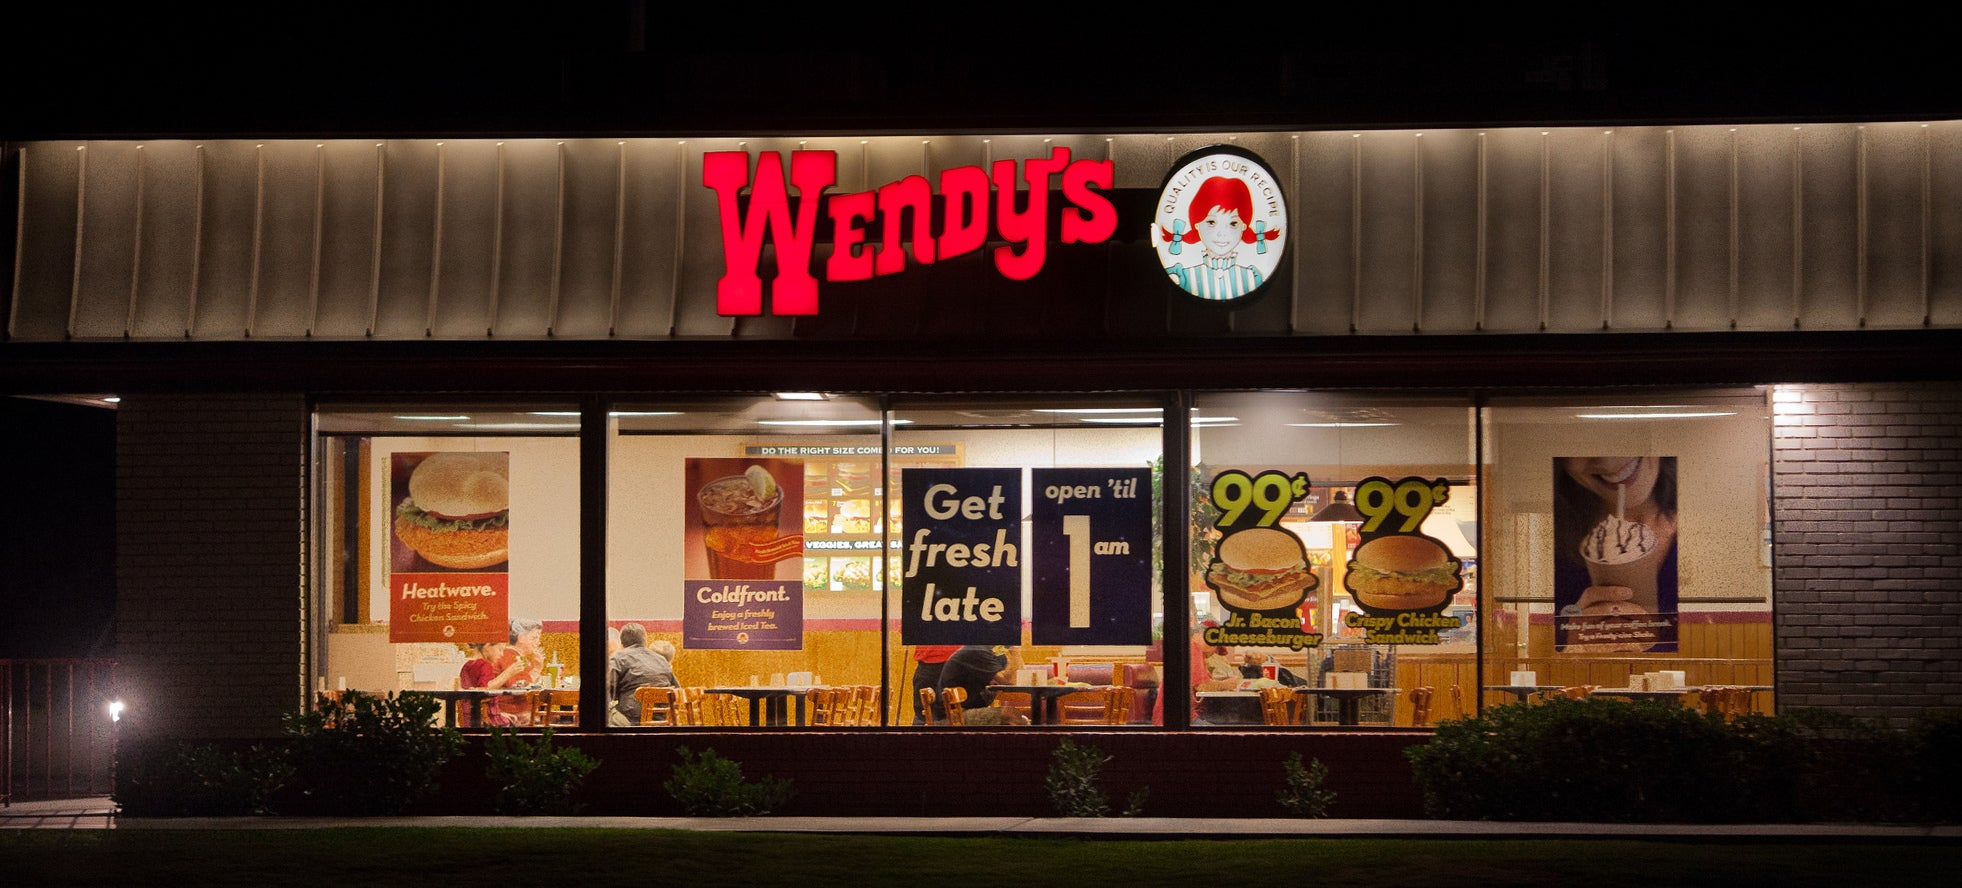 Wendy's Is Investigating a Credit Card Data Attack